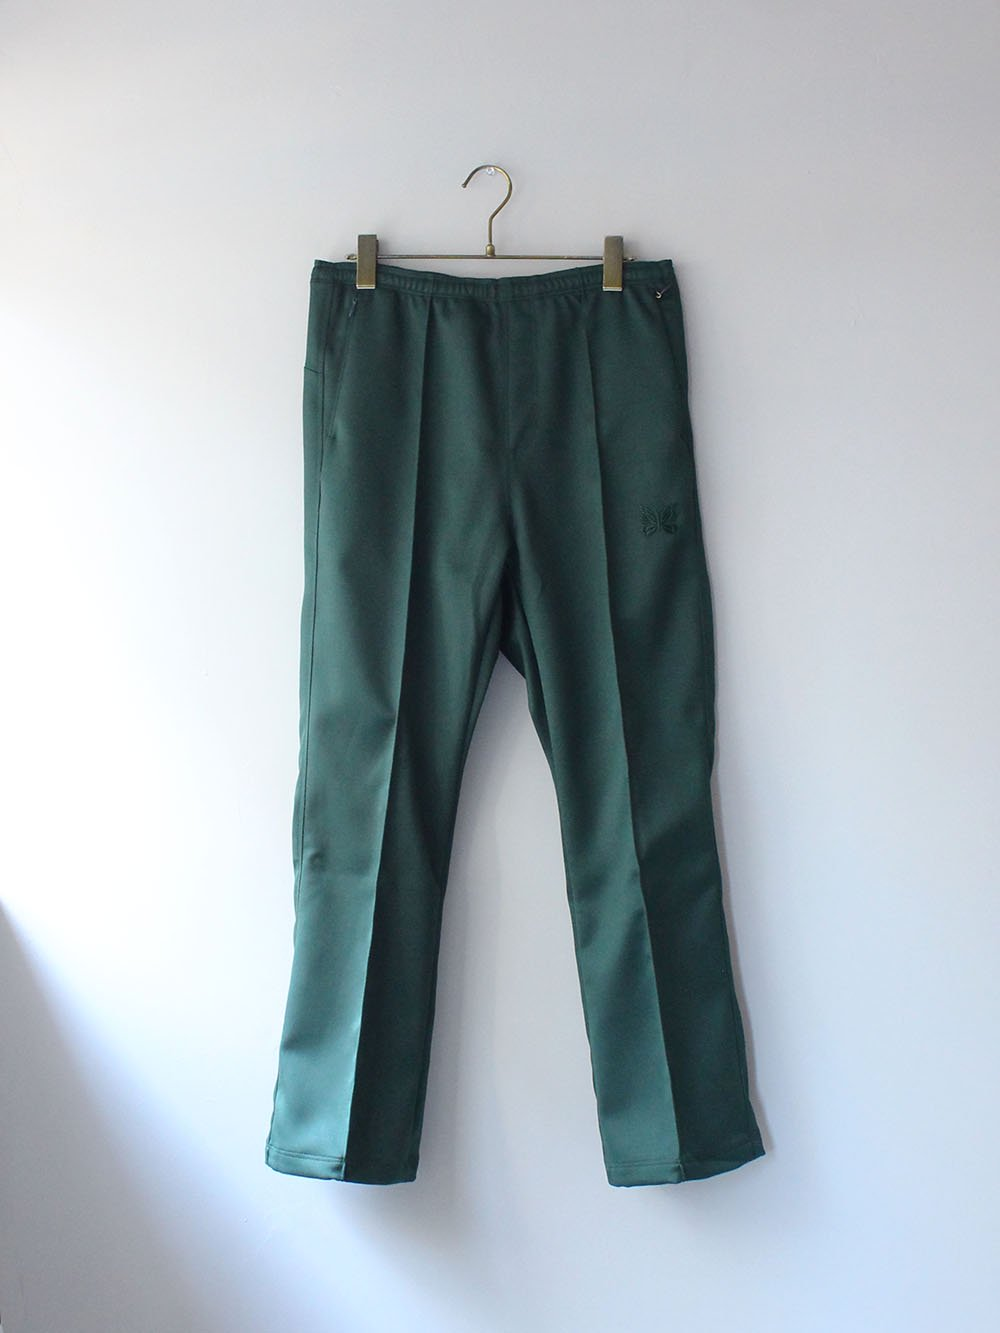 """<img class='new_mark_img1' src='https://img.shop-pro.jp/img/new/icons8.gif' style='border:none;display:inline;margin:0px;padding:0px;width:auto;' />Needles """" W.U. BOOT-CUT PANT - PE/R DOESKIN (GREEN)"""""""